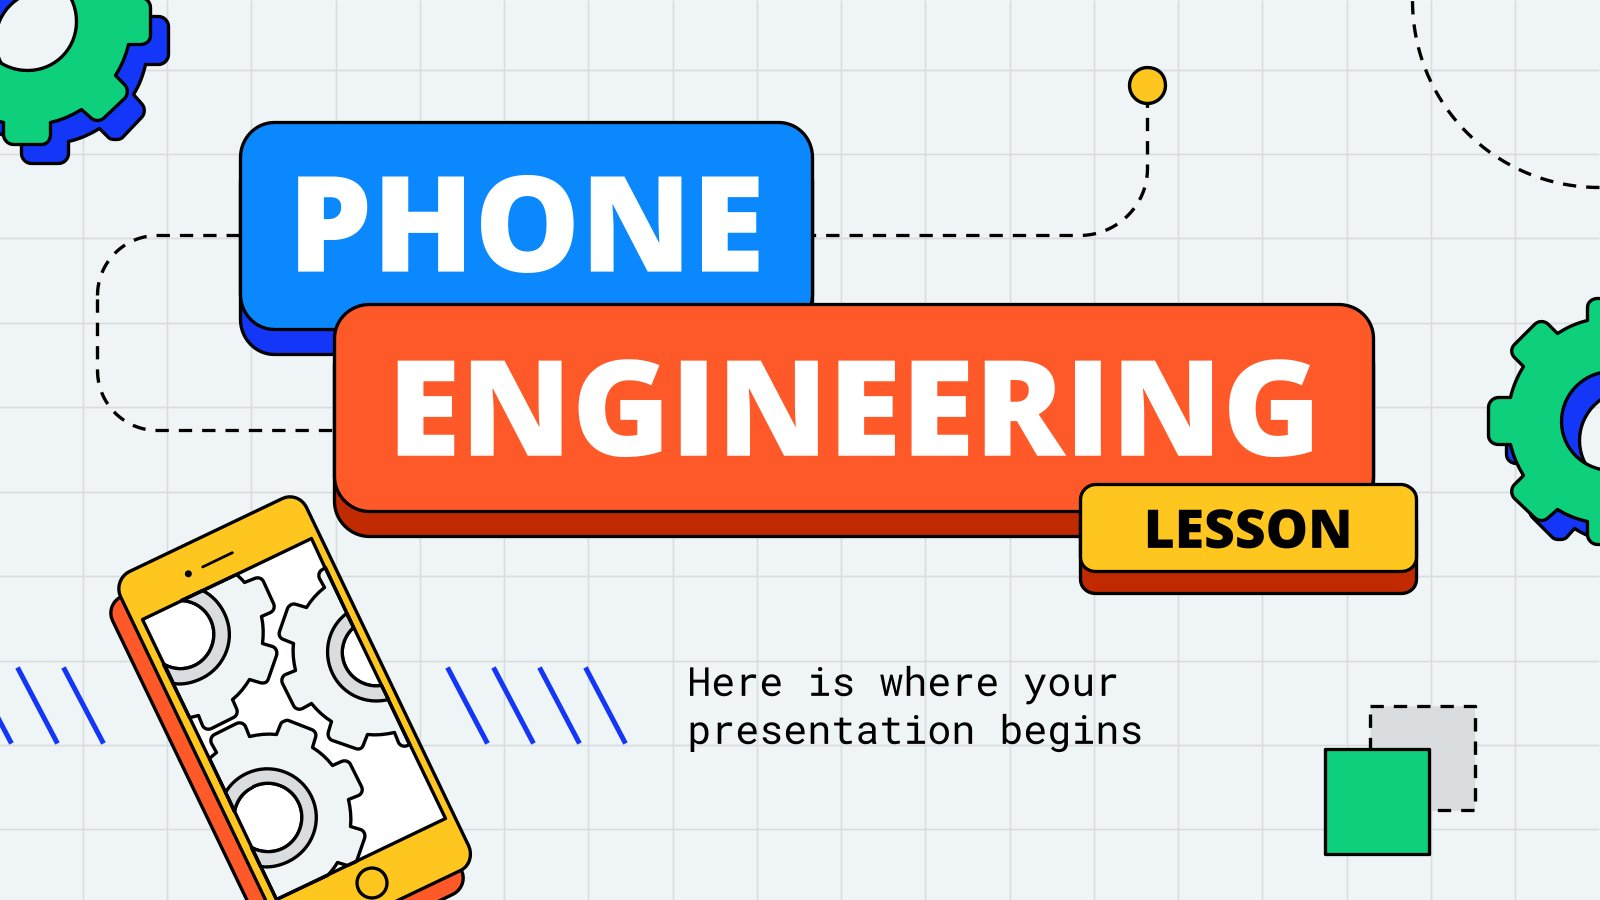 Phone Engineering Lesson presentation template